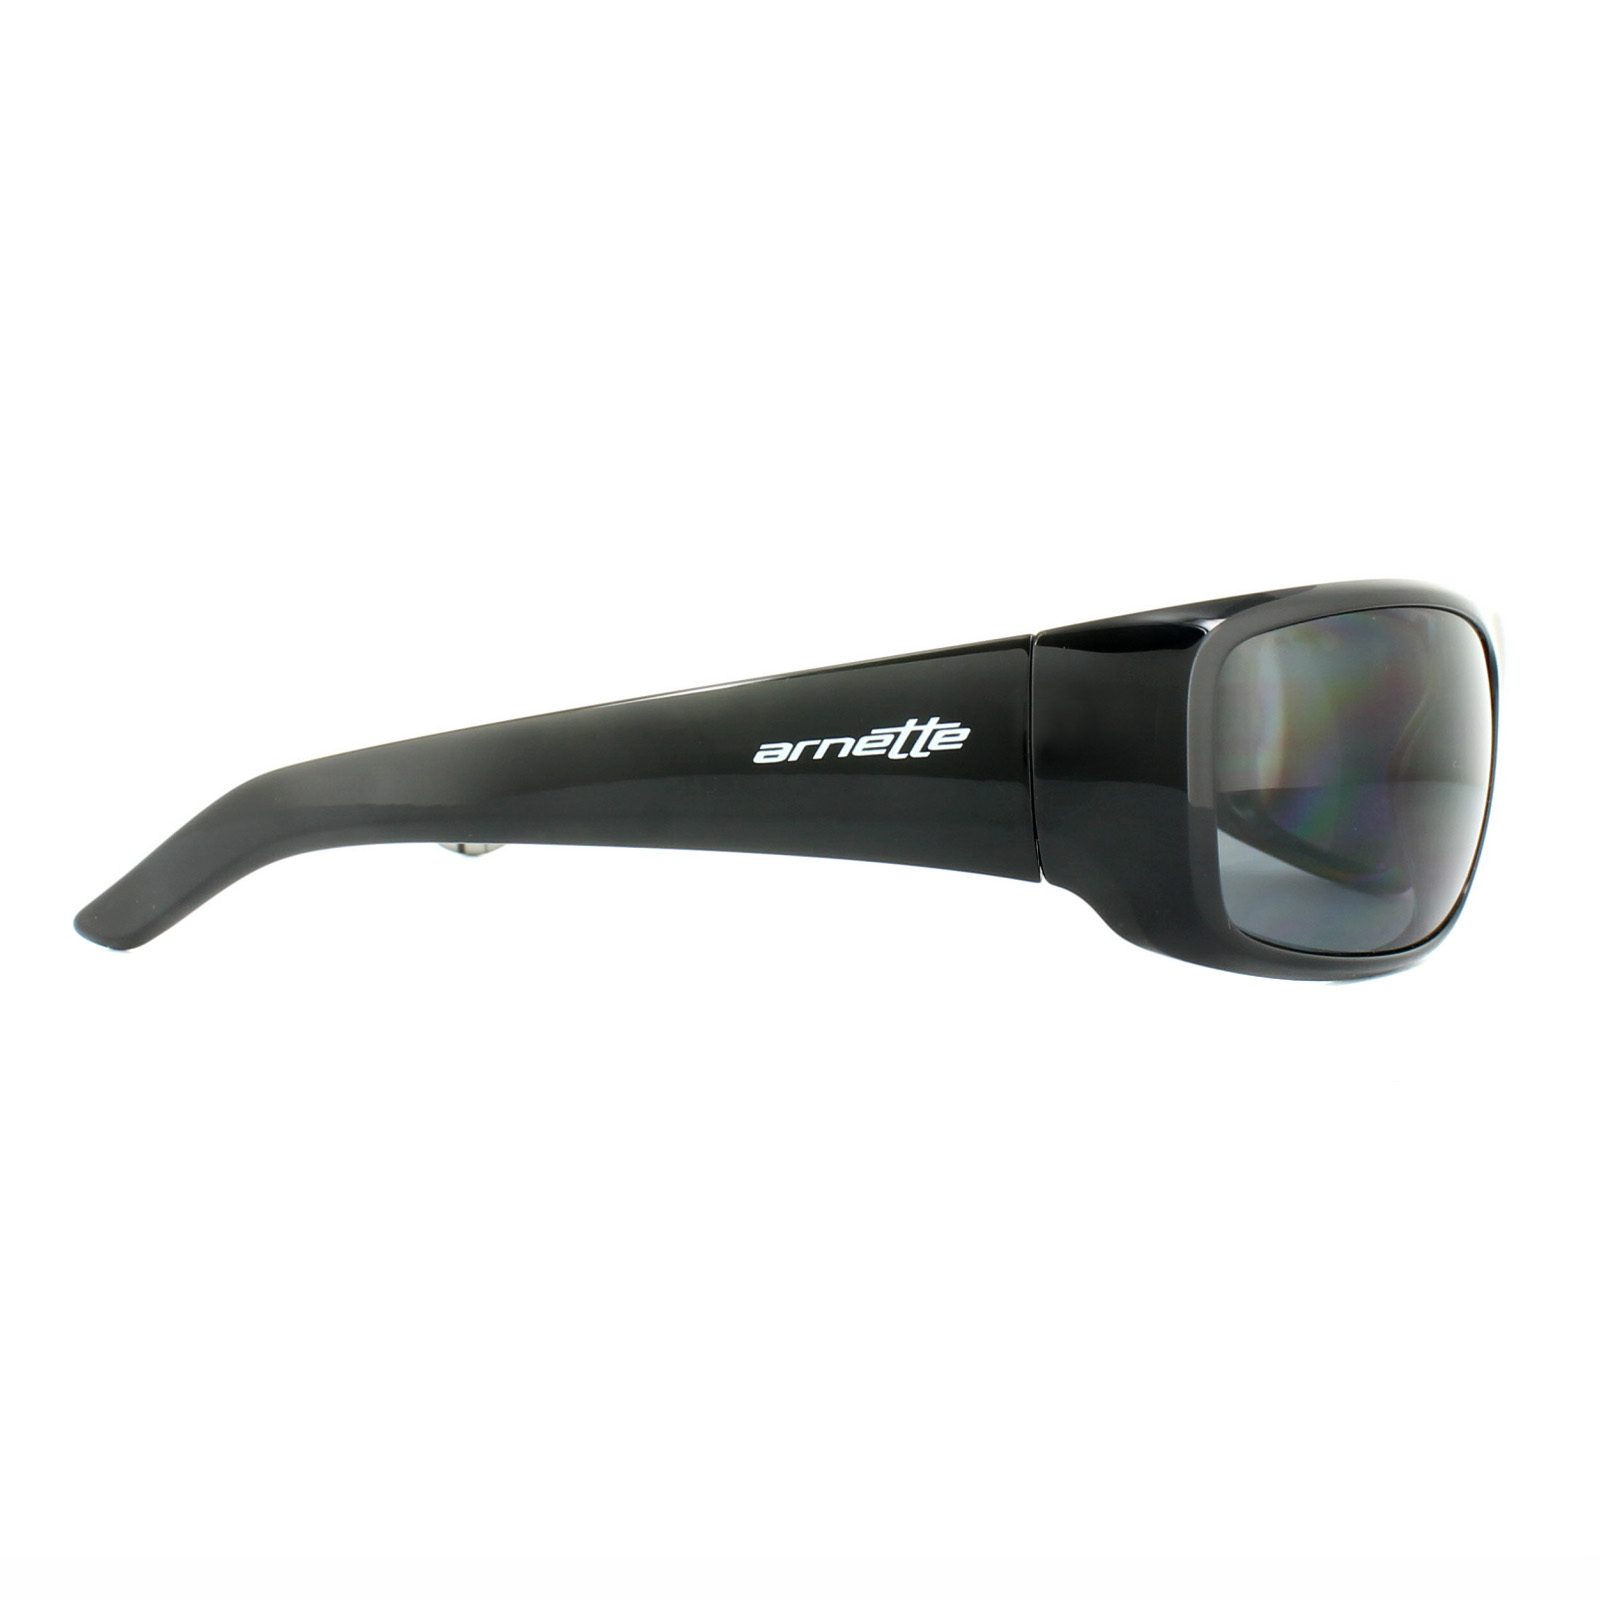 a48d347ebb Sentinel Arnette Sunglasses Hot Shot 4182 214981 Polished Black Graphics  Grey Polarized